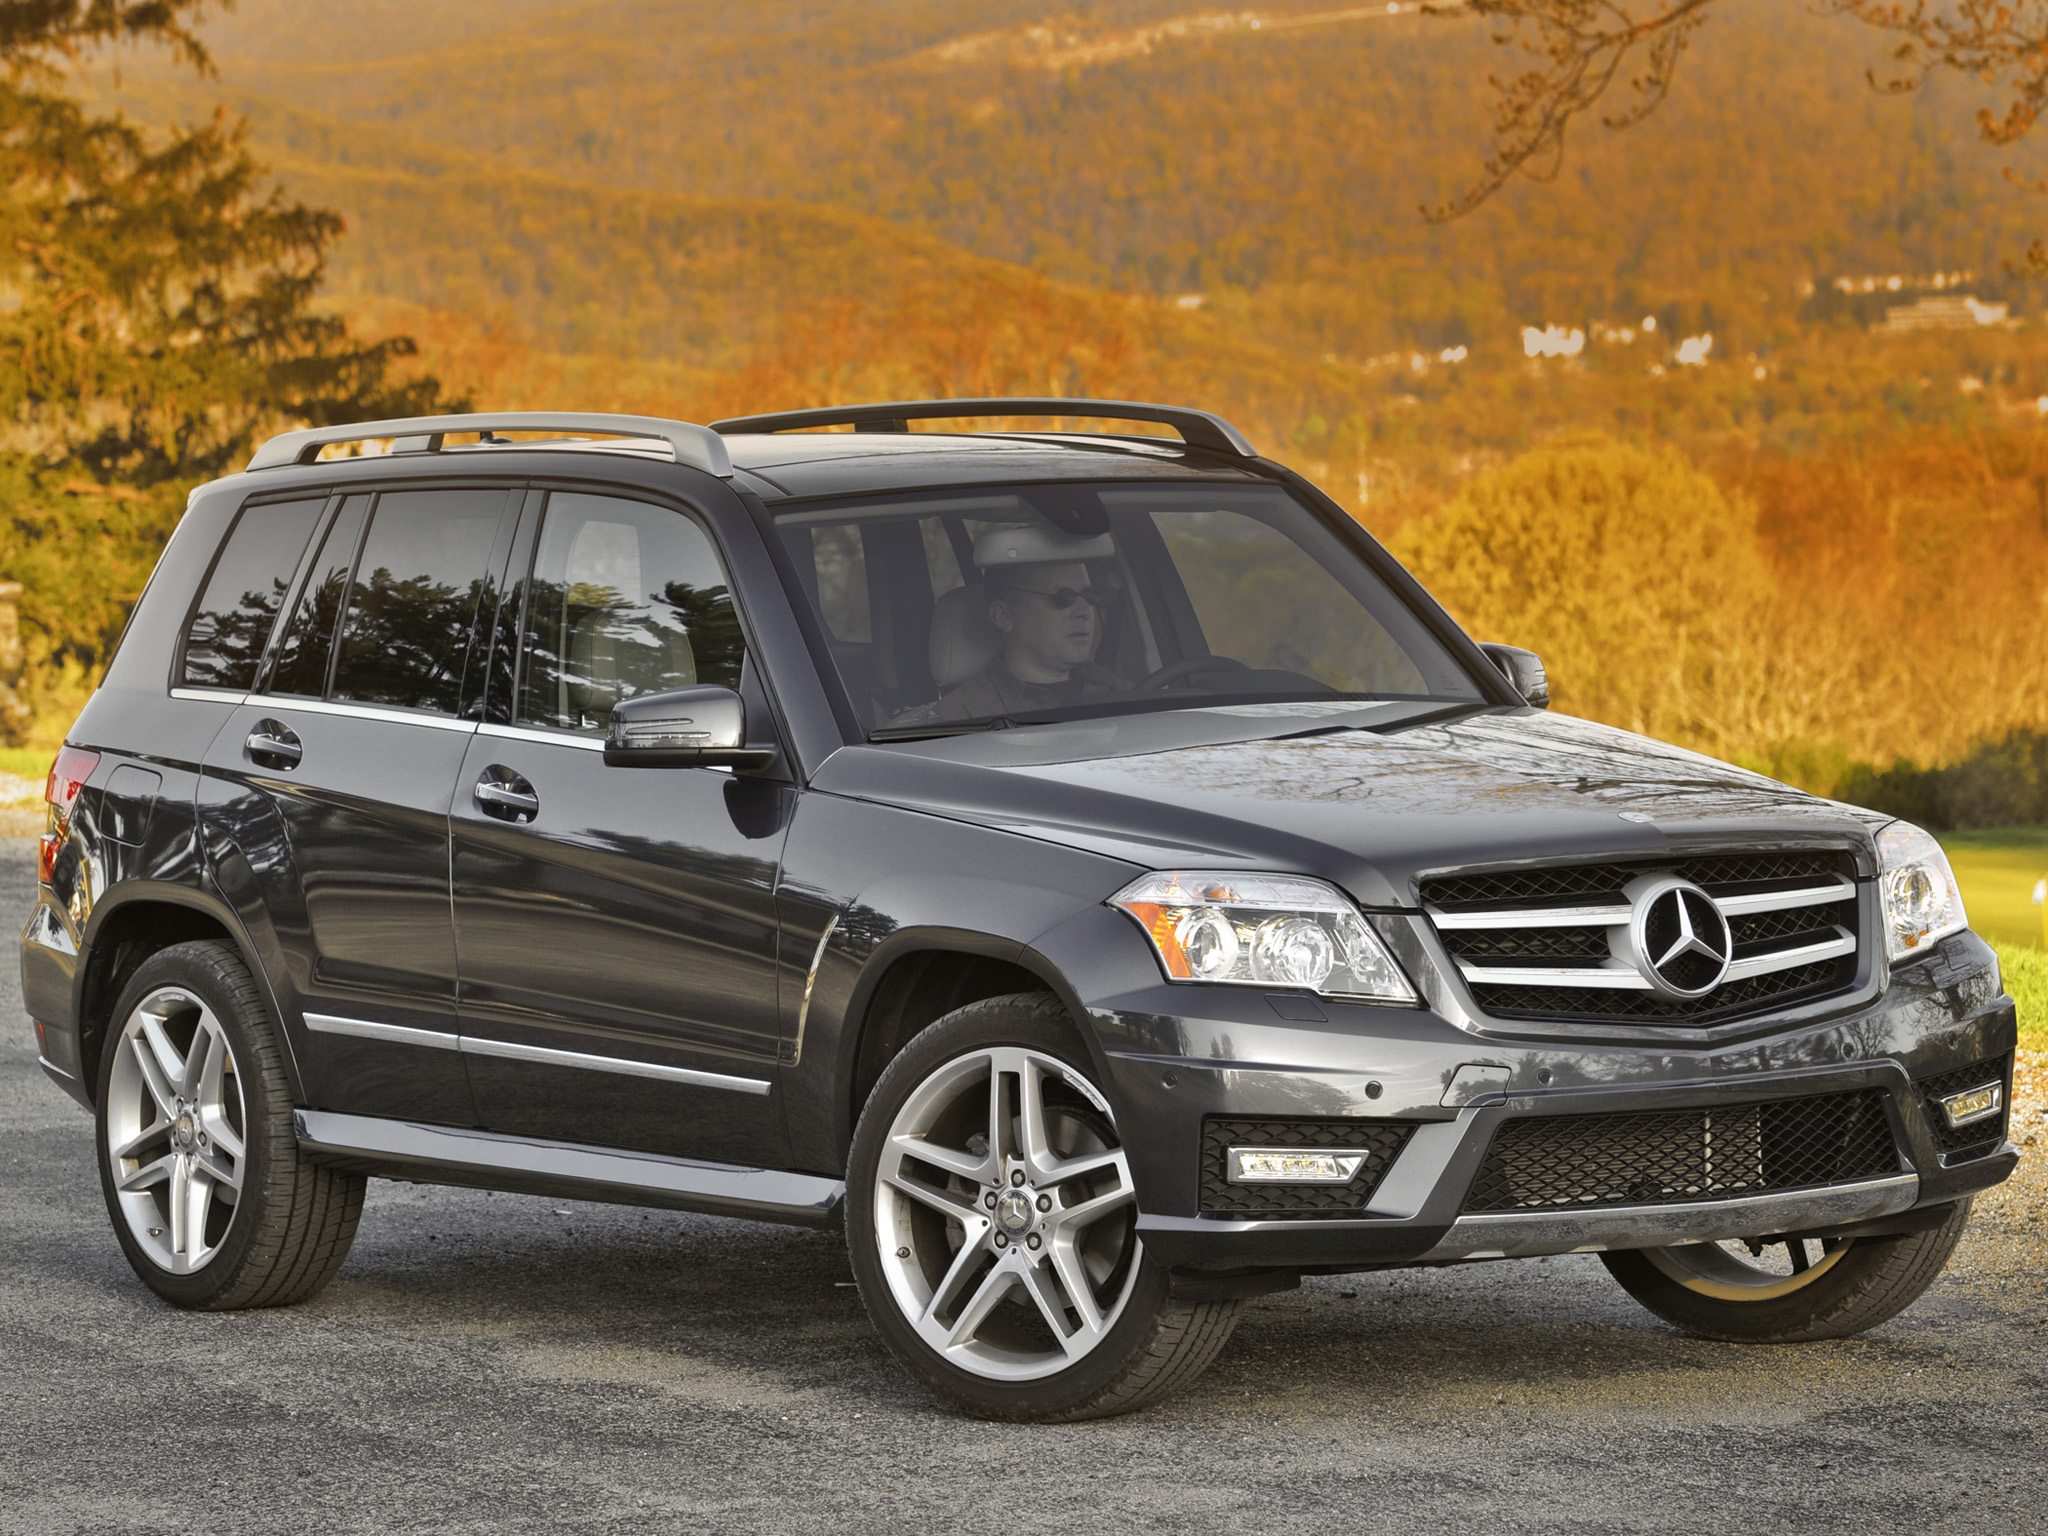 Glk 350 amg pictures to pin on pinterest pinsdaddy for Mercedes benz glk 350 amg